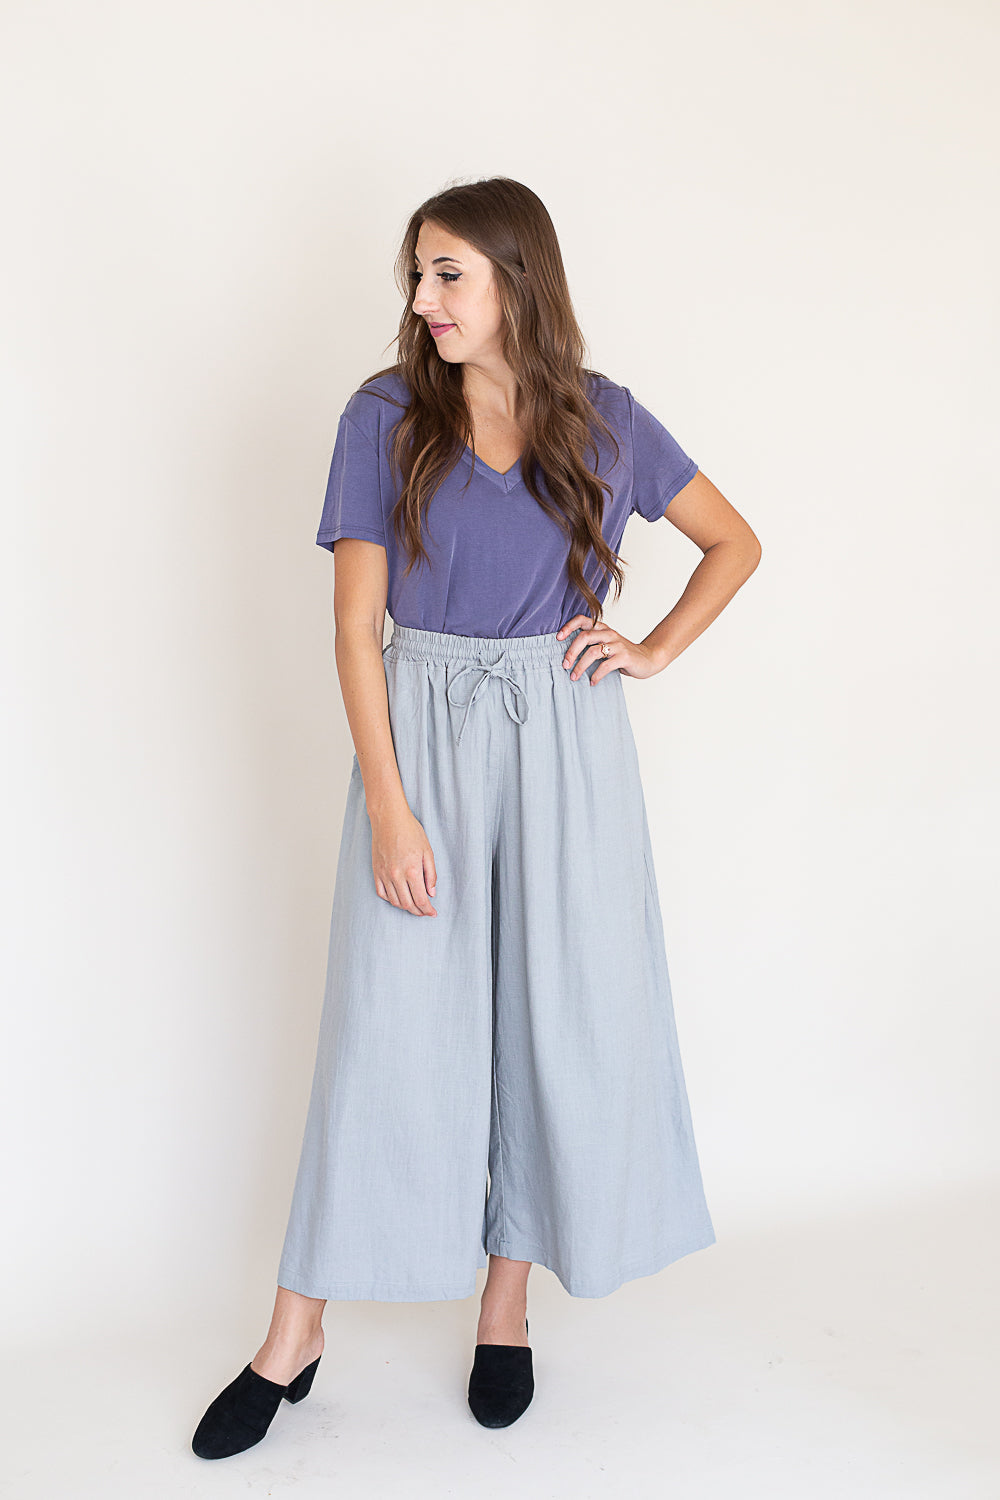 Cloudy Skies Culottes